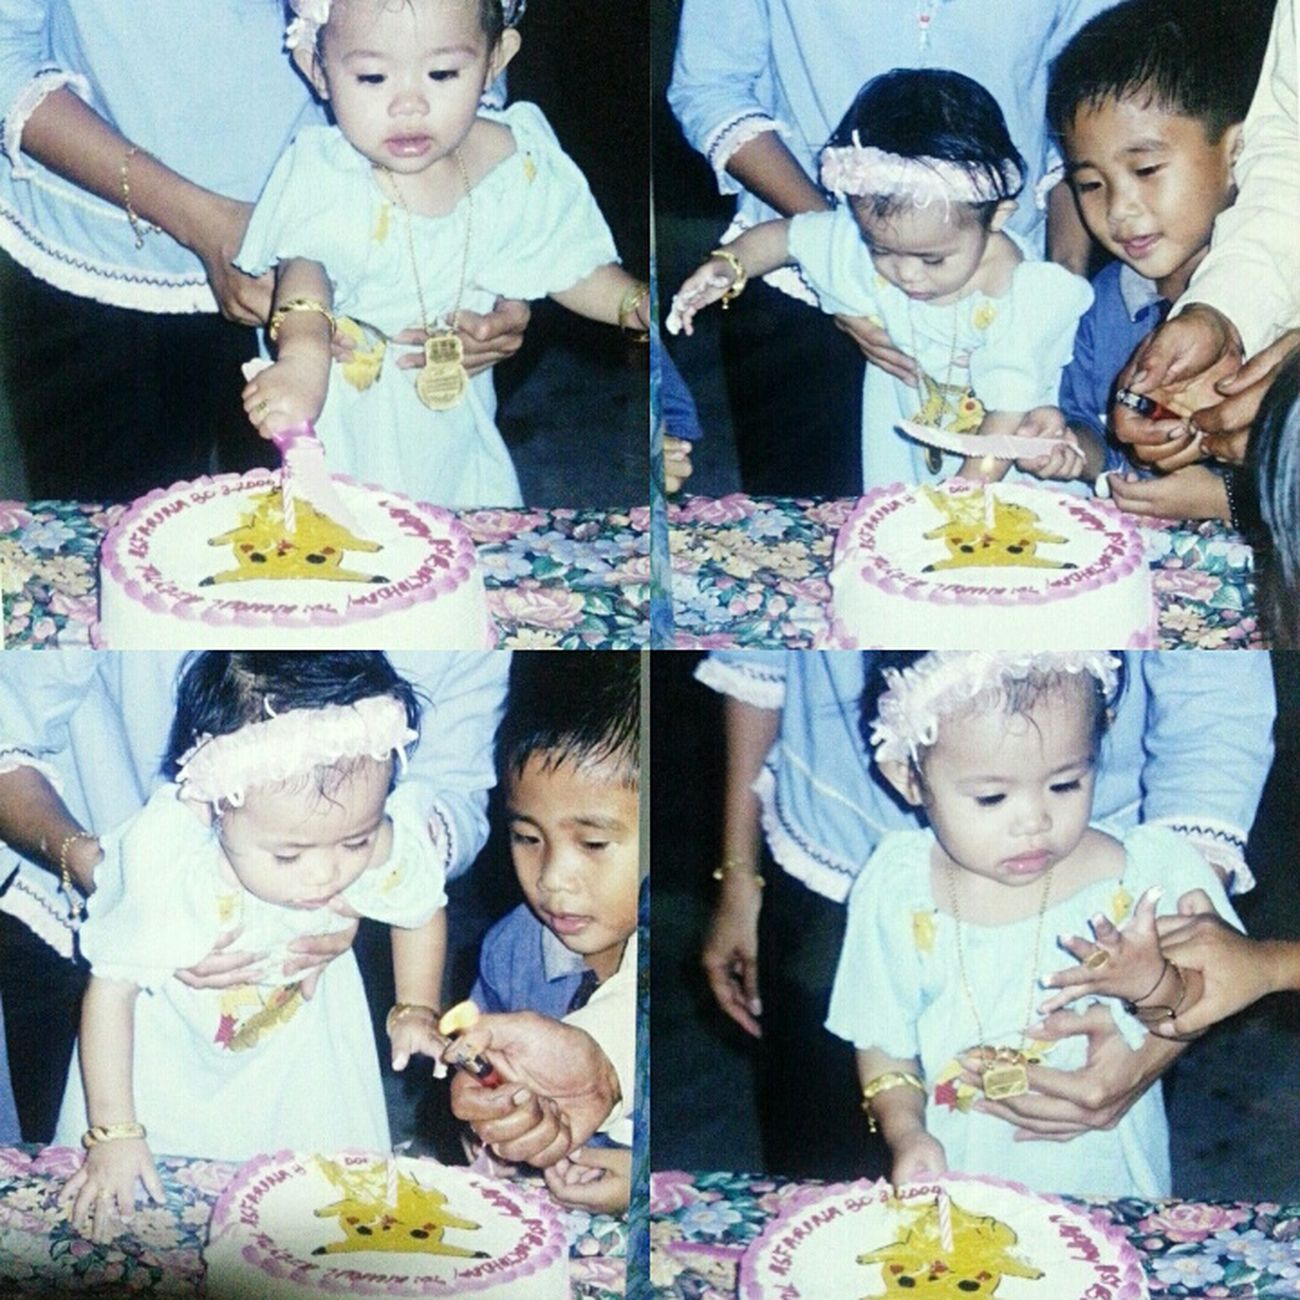 her first cake 🙆 Happy 21st to the one beside her. Happy birthday oniichan :3 time flies fast 00sMemories